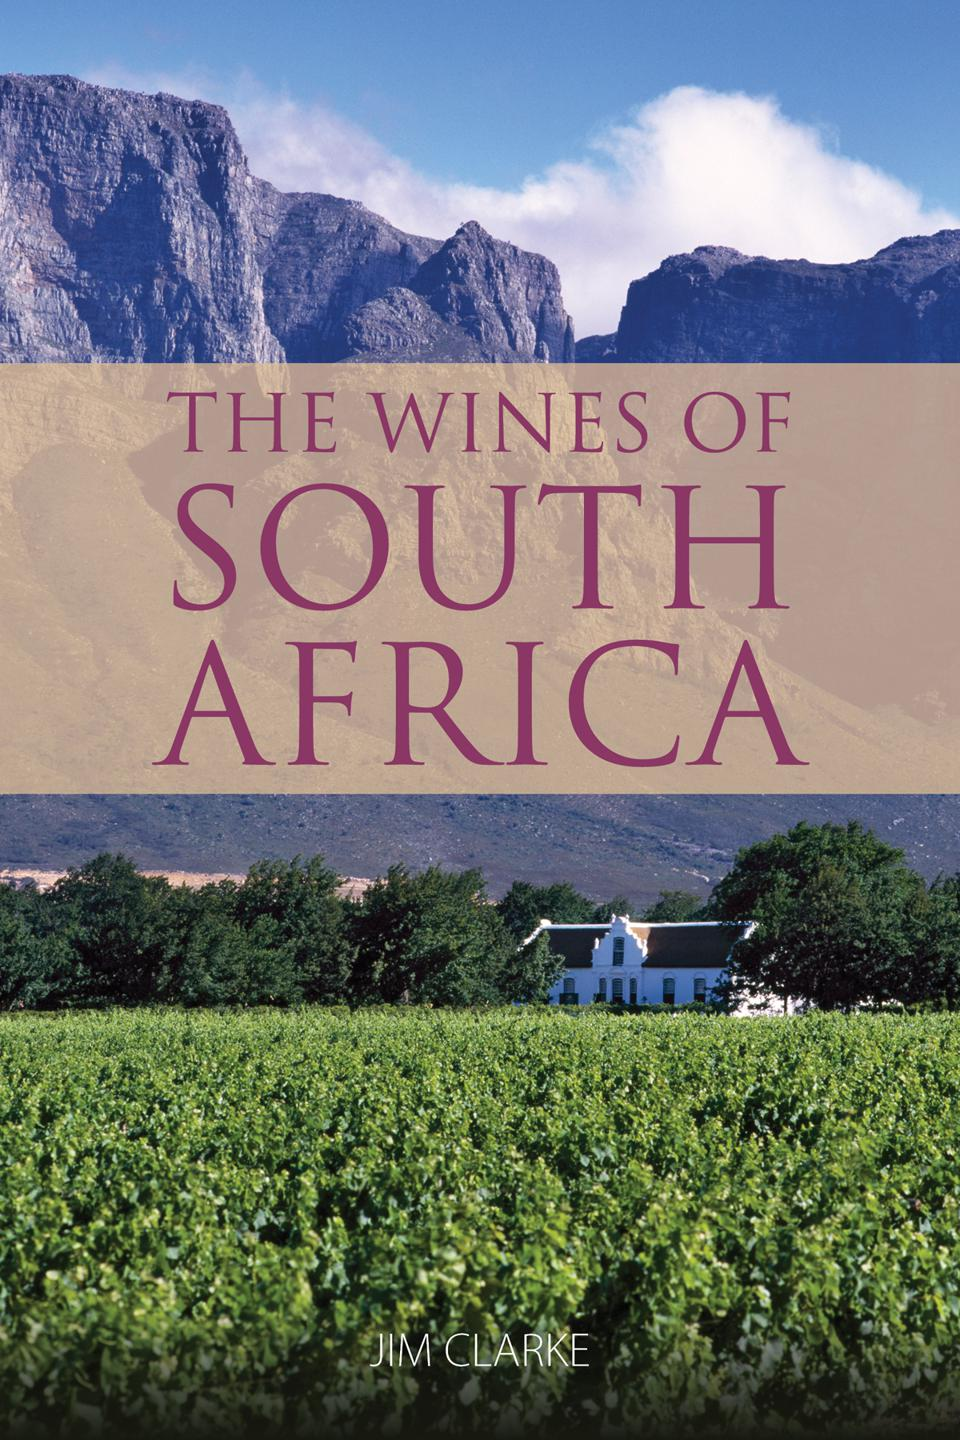 A comprehensive guide to the wines of South Africa